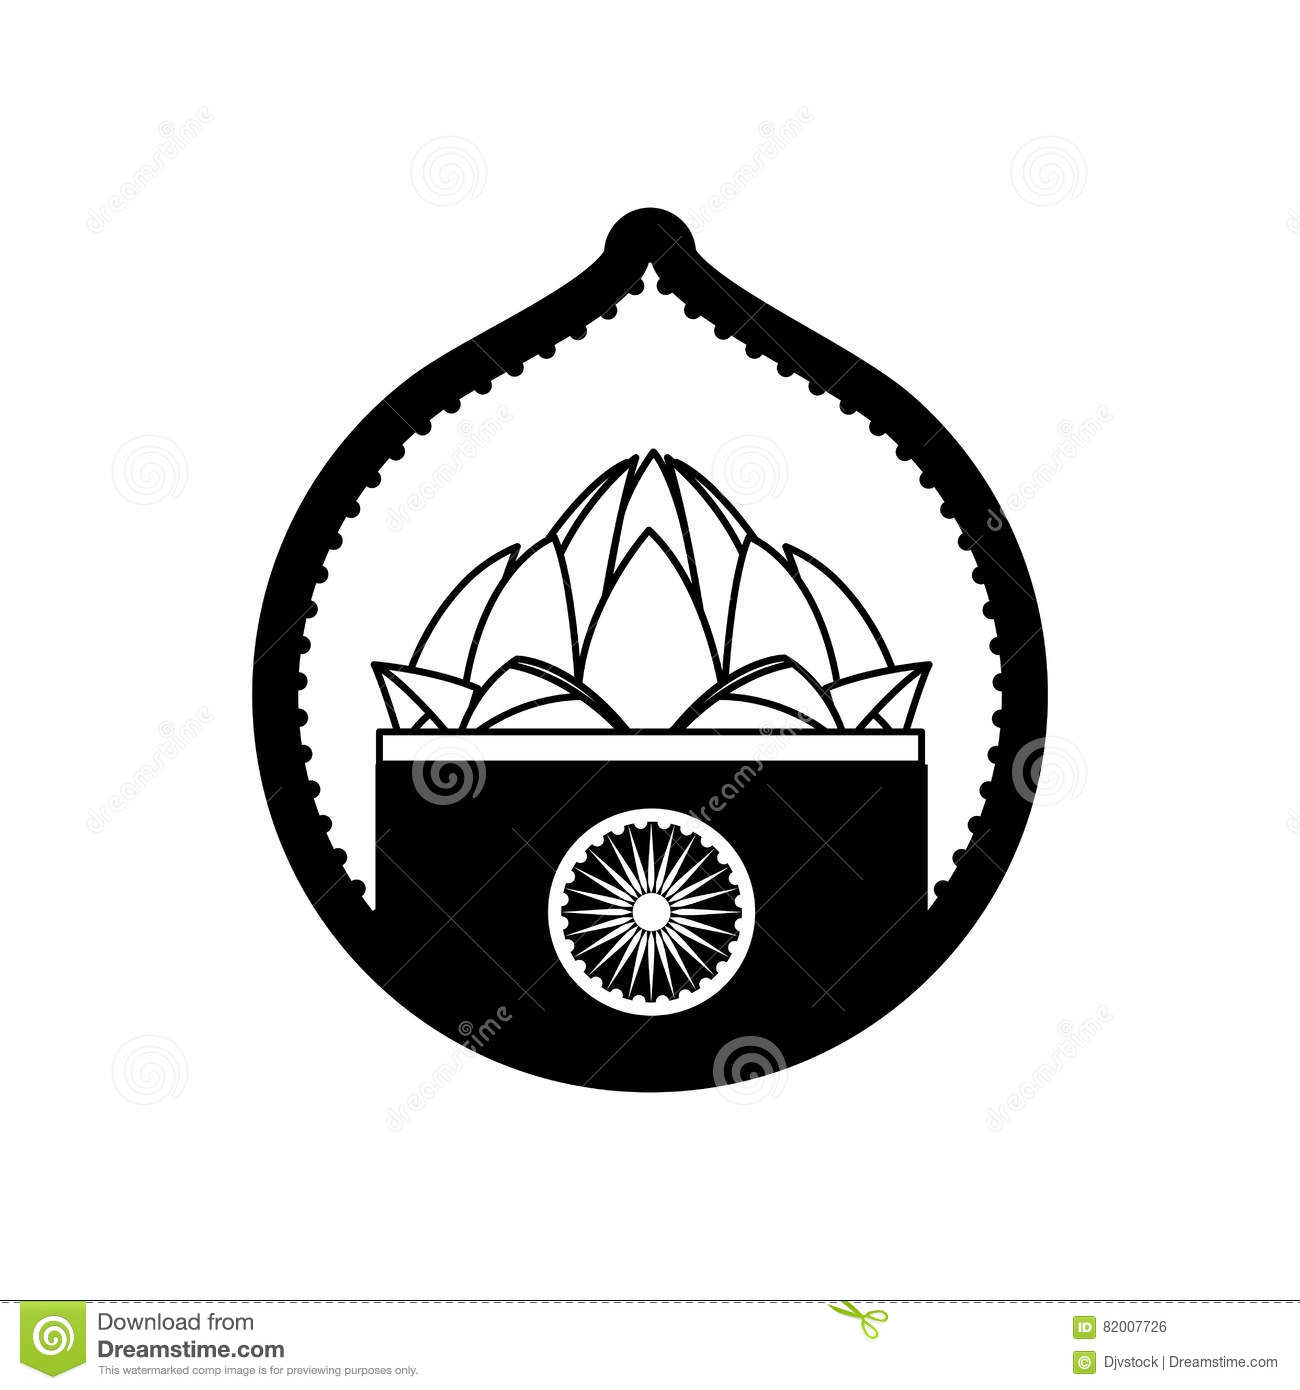 Stamp lotus flower indian culture stock vector illustration of stamp lotus flower indian culture mightylinksfo